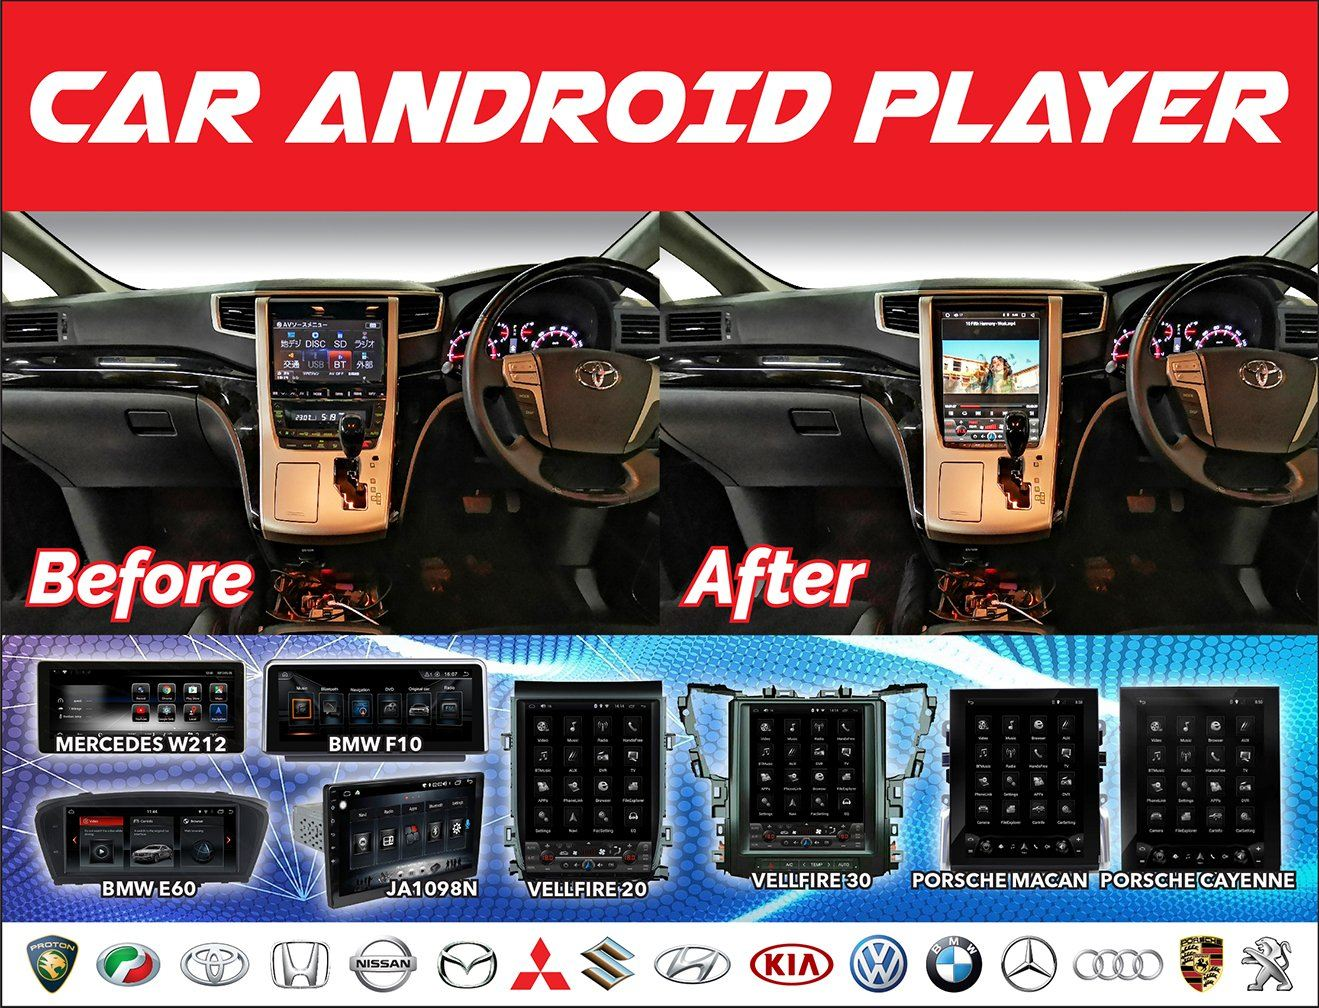 Car android player